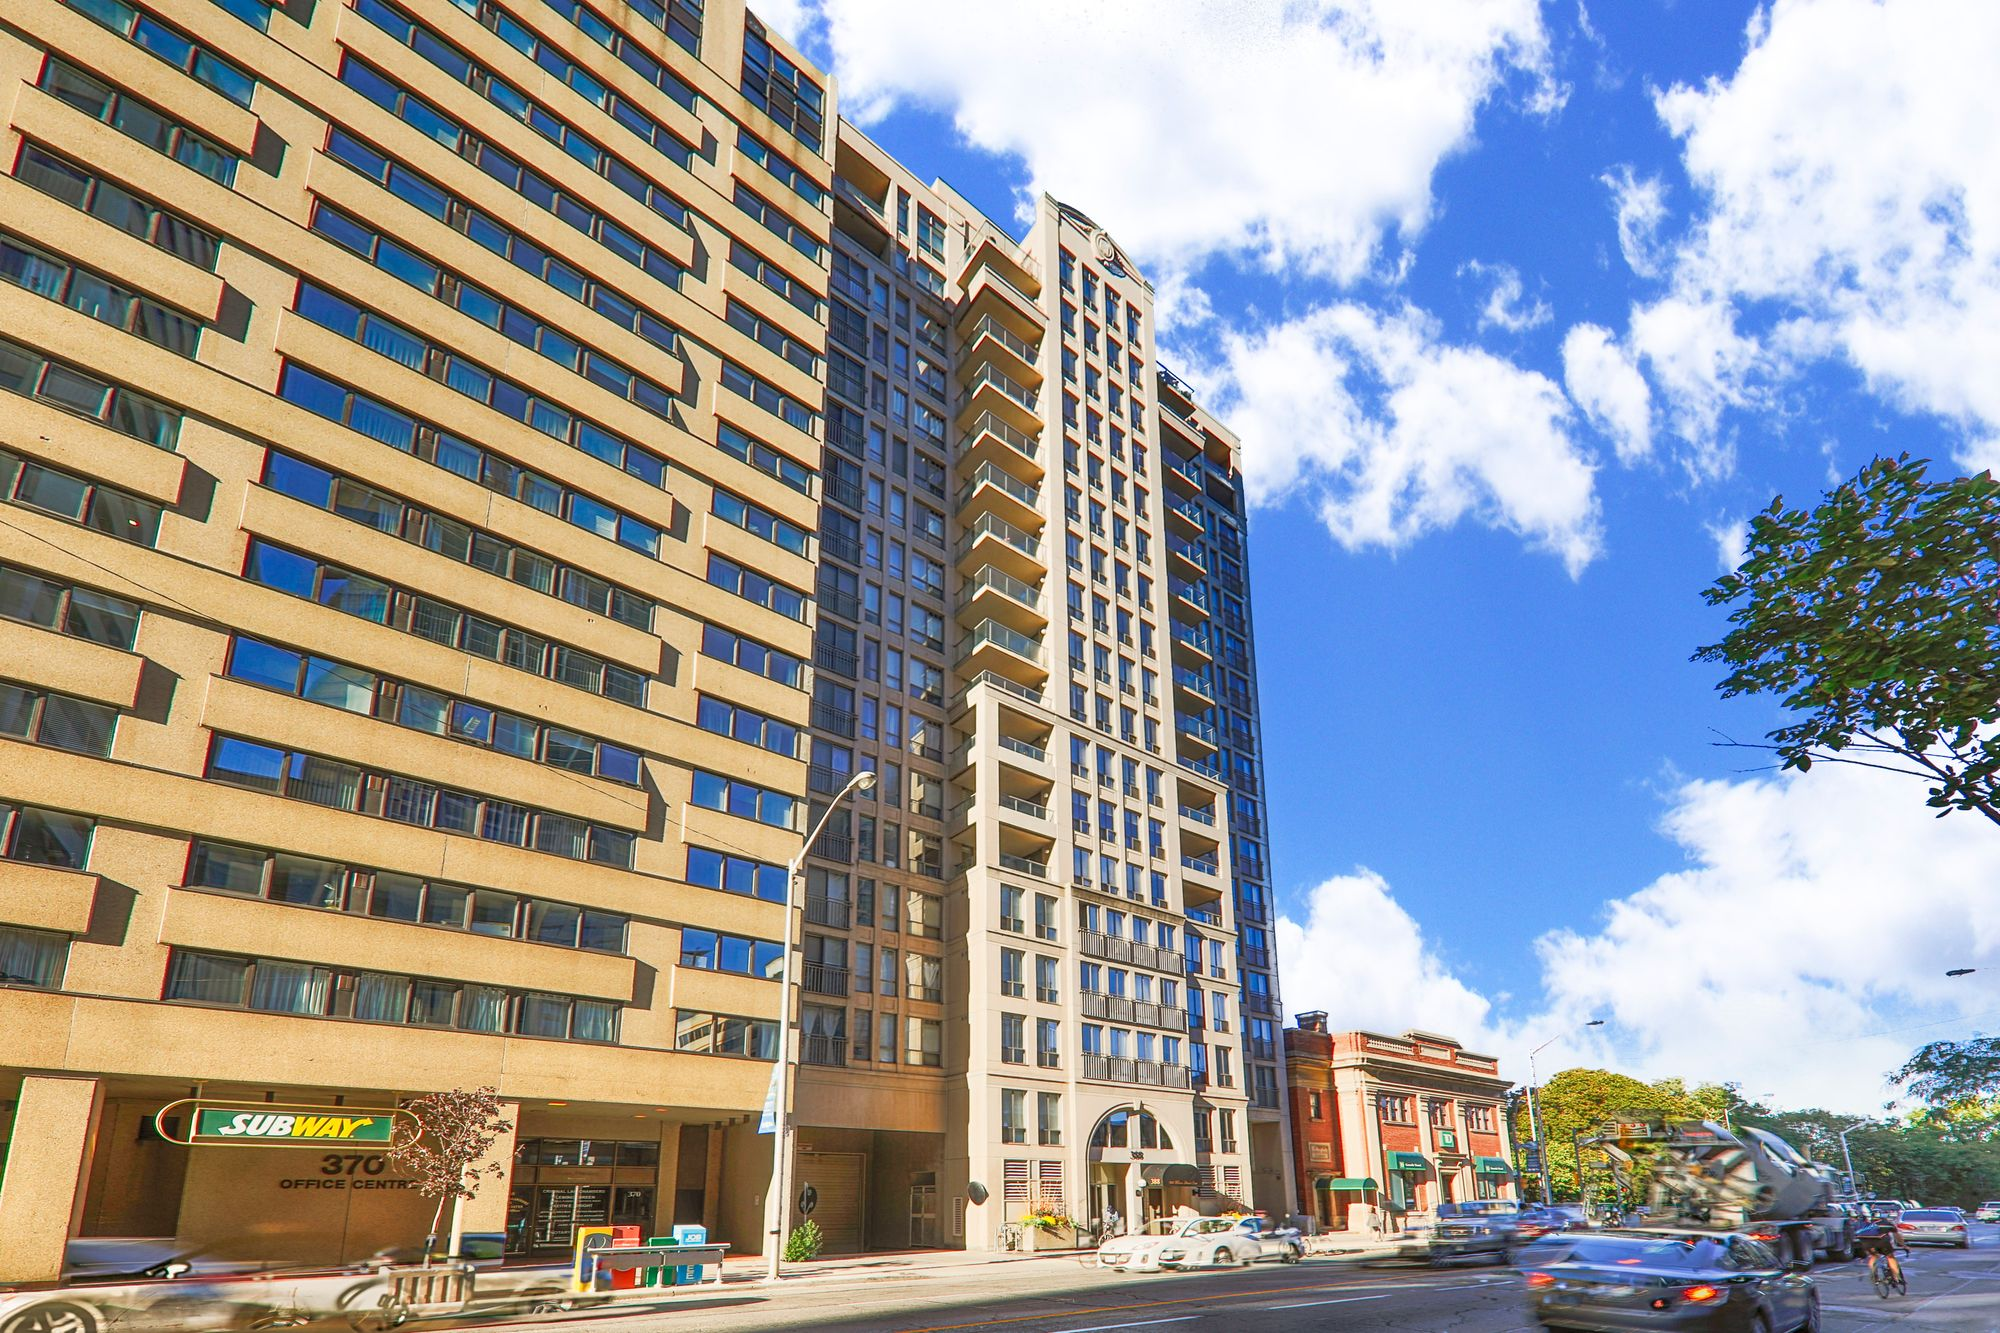 388 Bloor St E, unit 2101 for sale in Yonge and Bloor - image #1